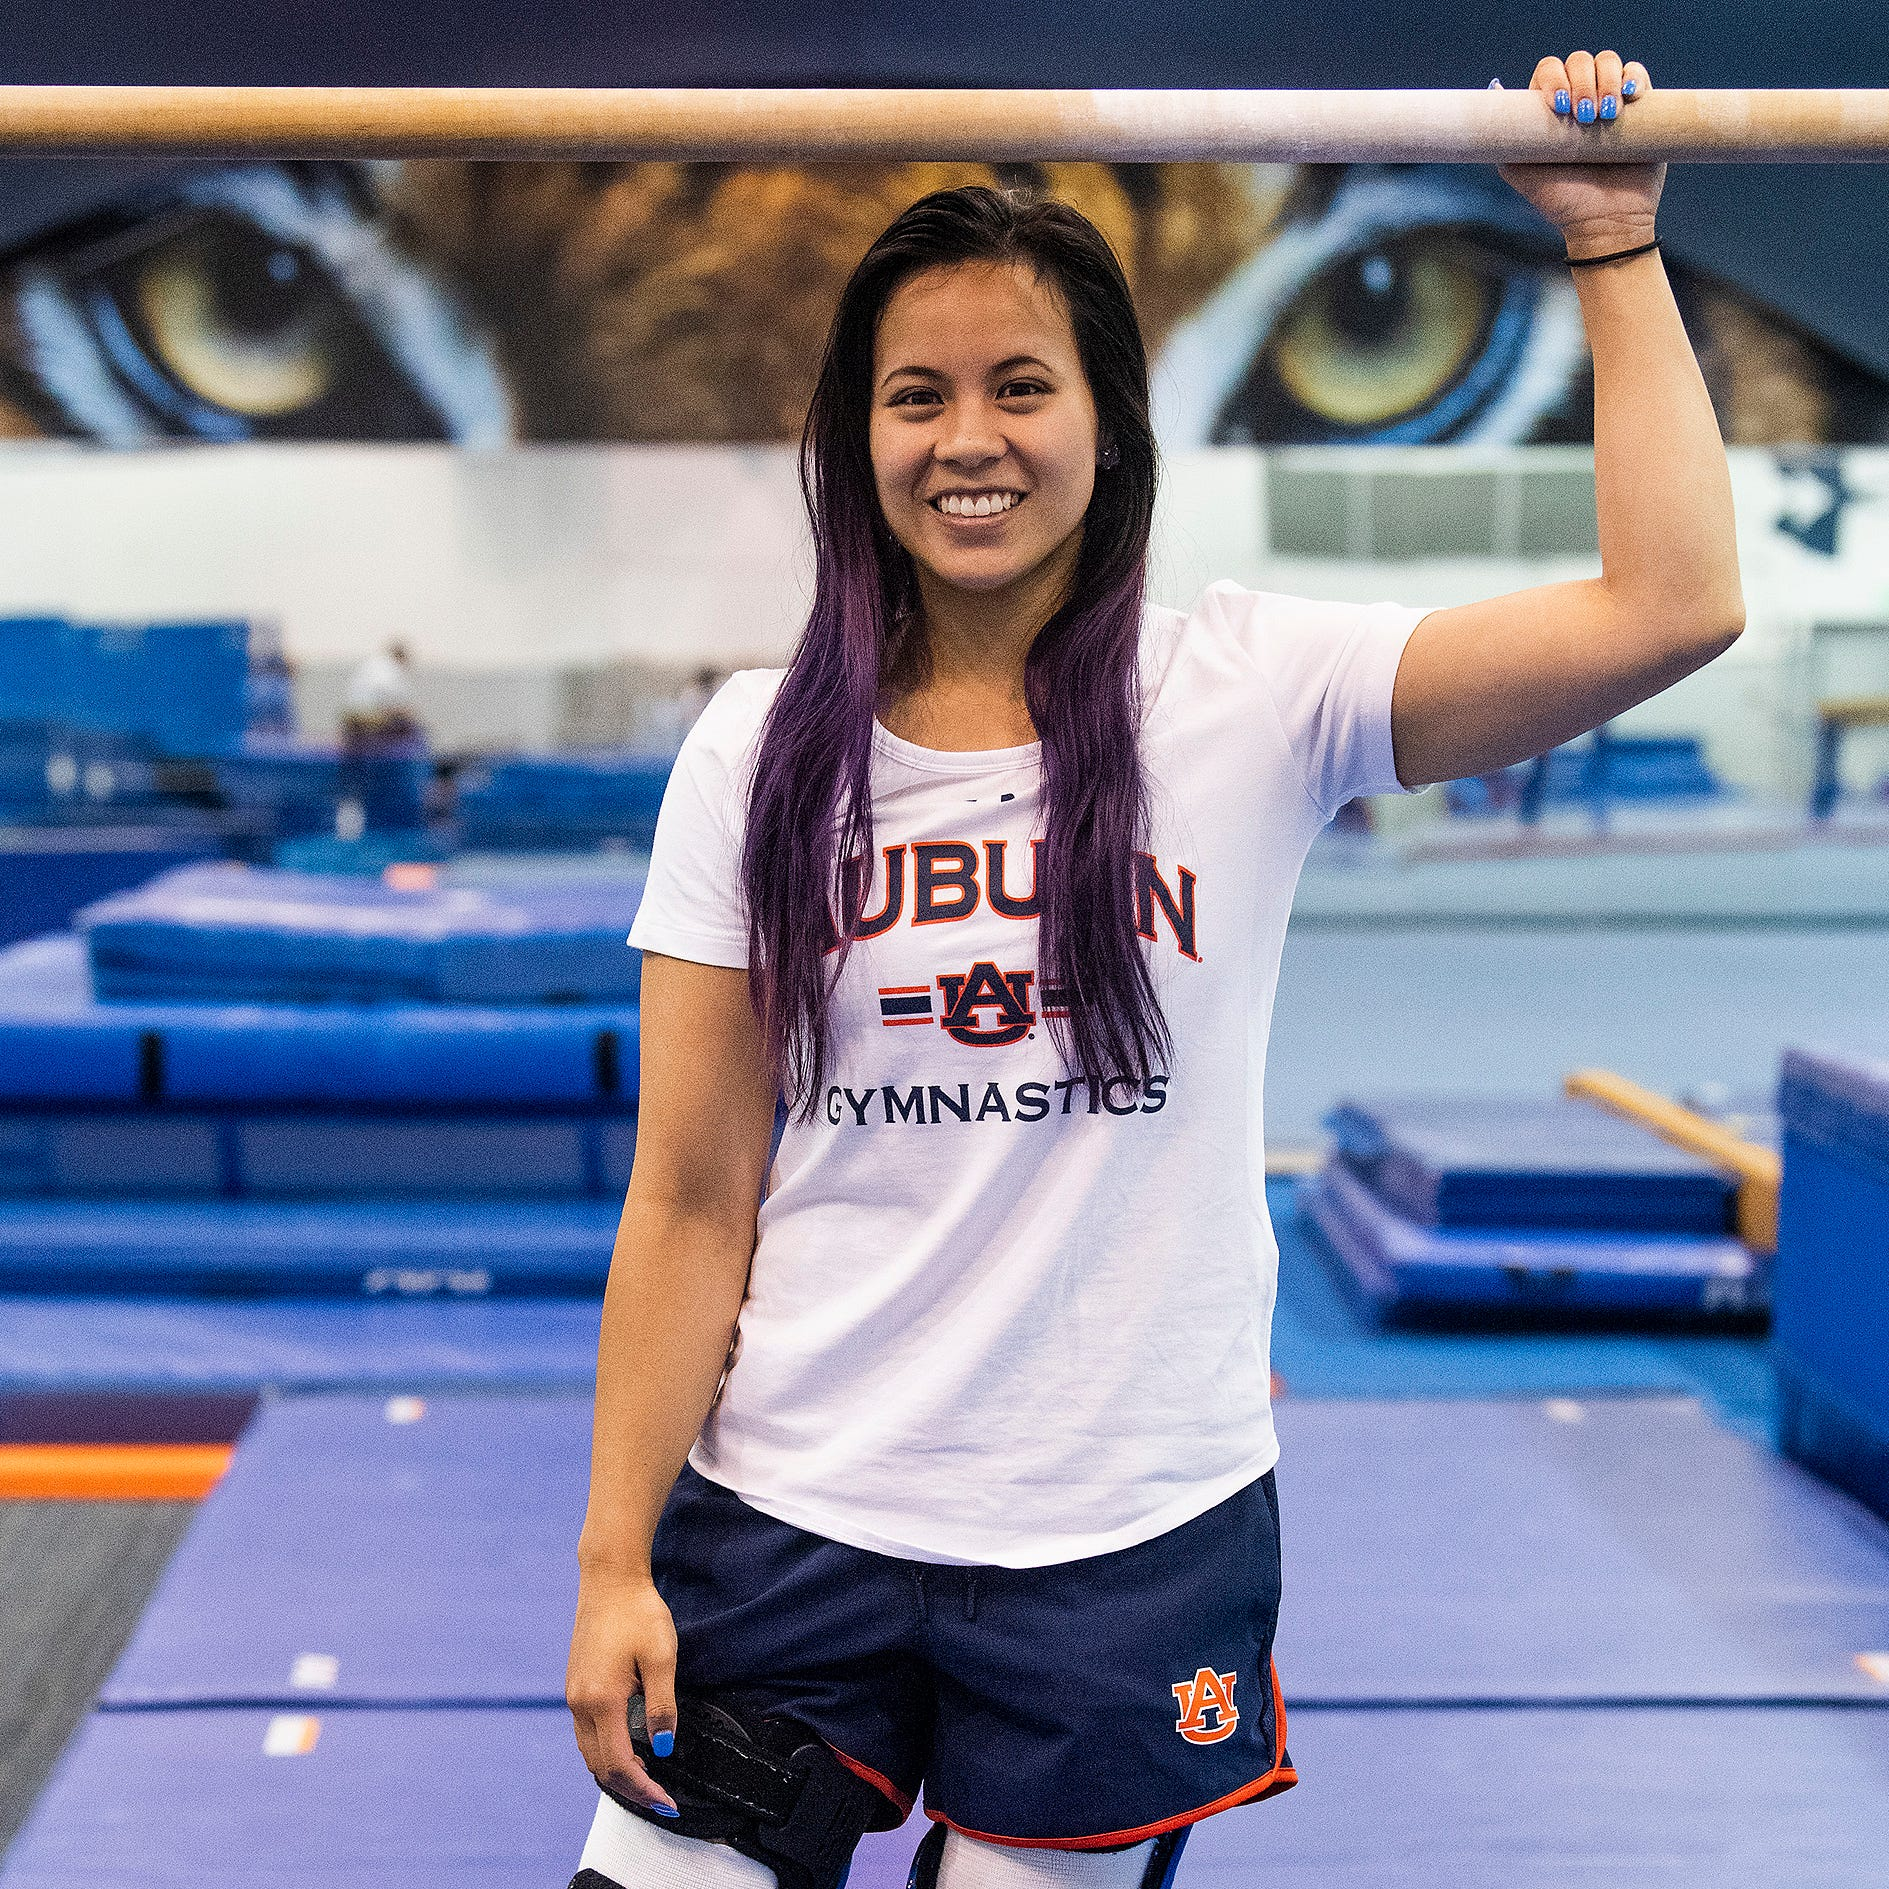 Auburn gymnast Sam Cerio isn't defined by her injury